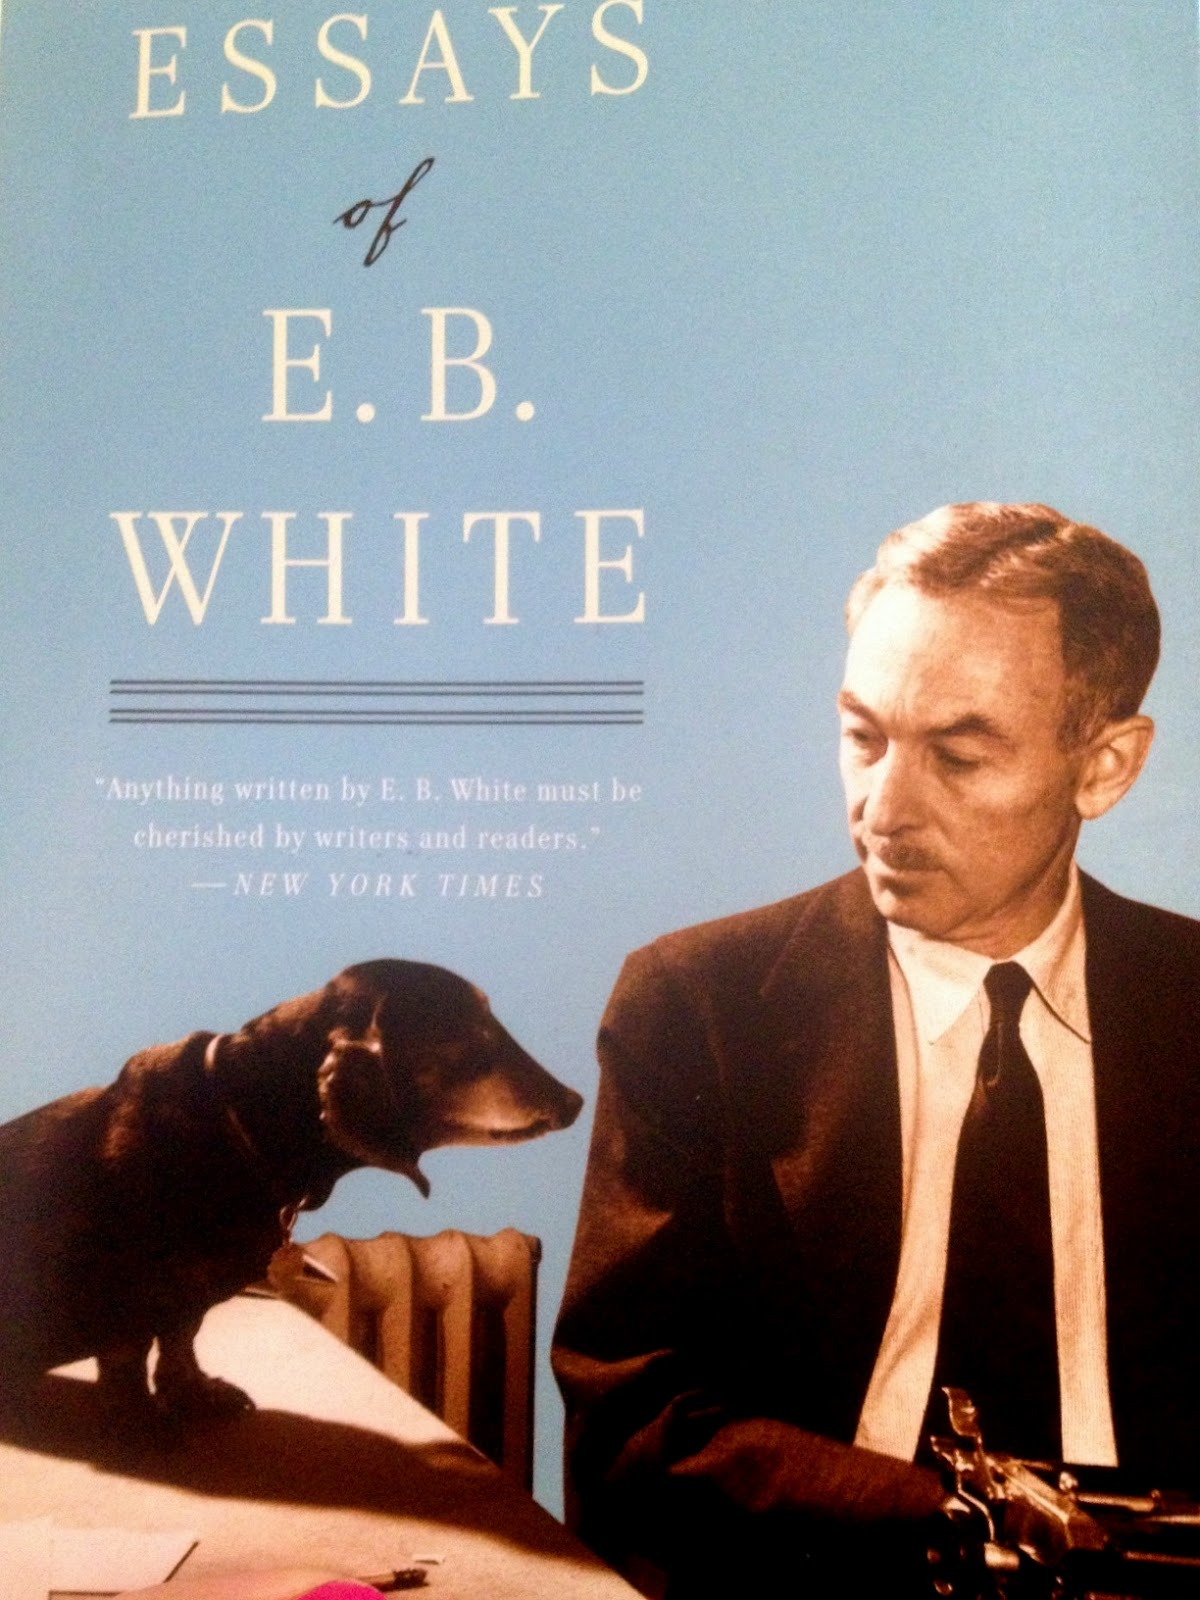 eb white essay essays of e b white by e b white paperback barnes be still a minute wiener wednesday e b whitehere he is one of his dachshunds on the